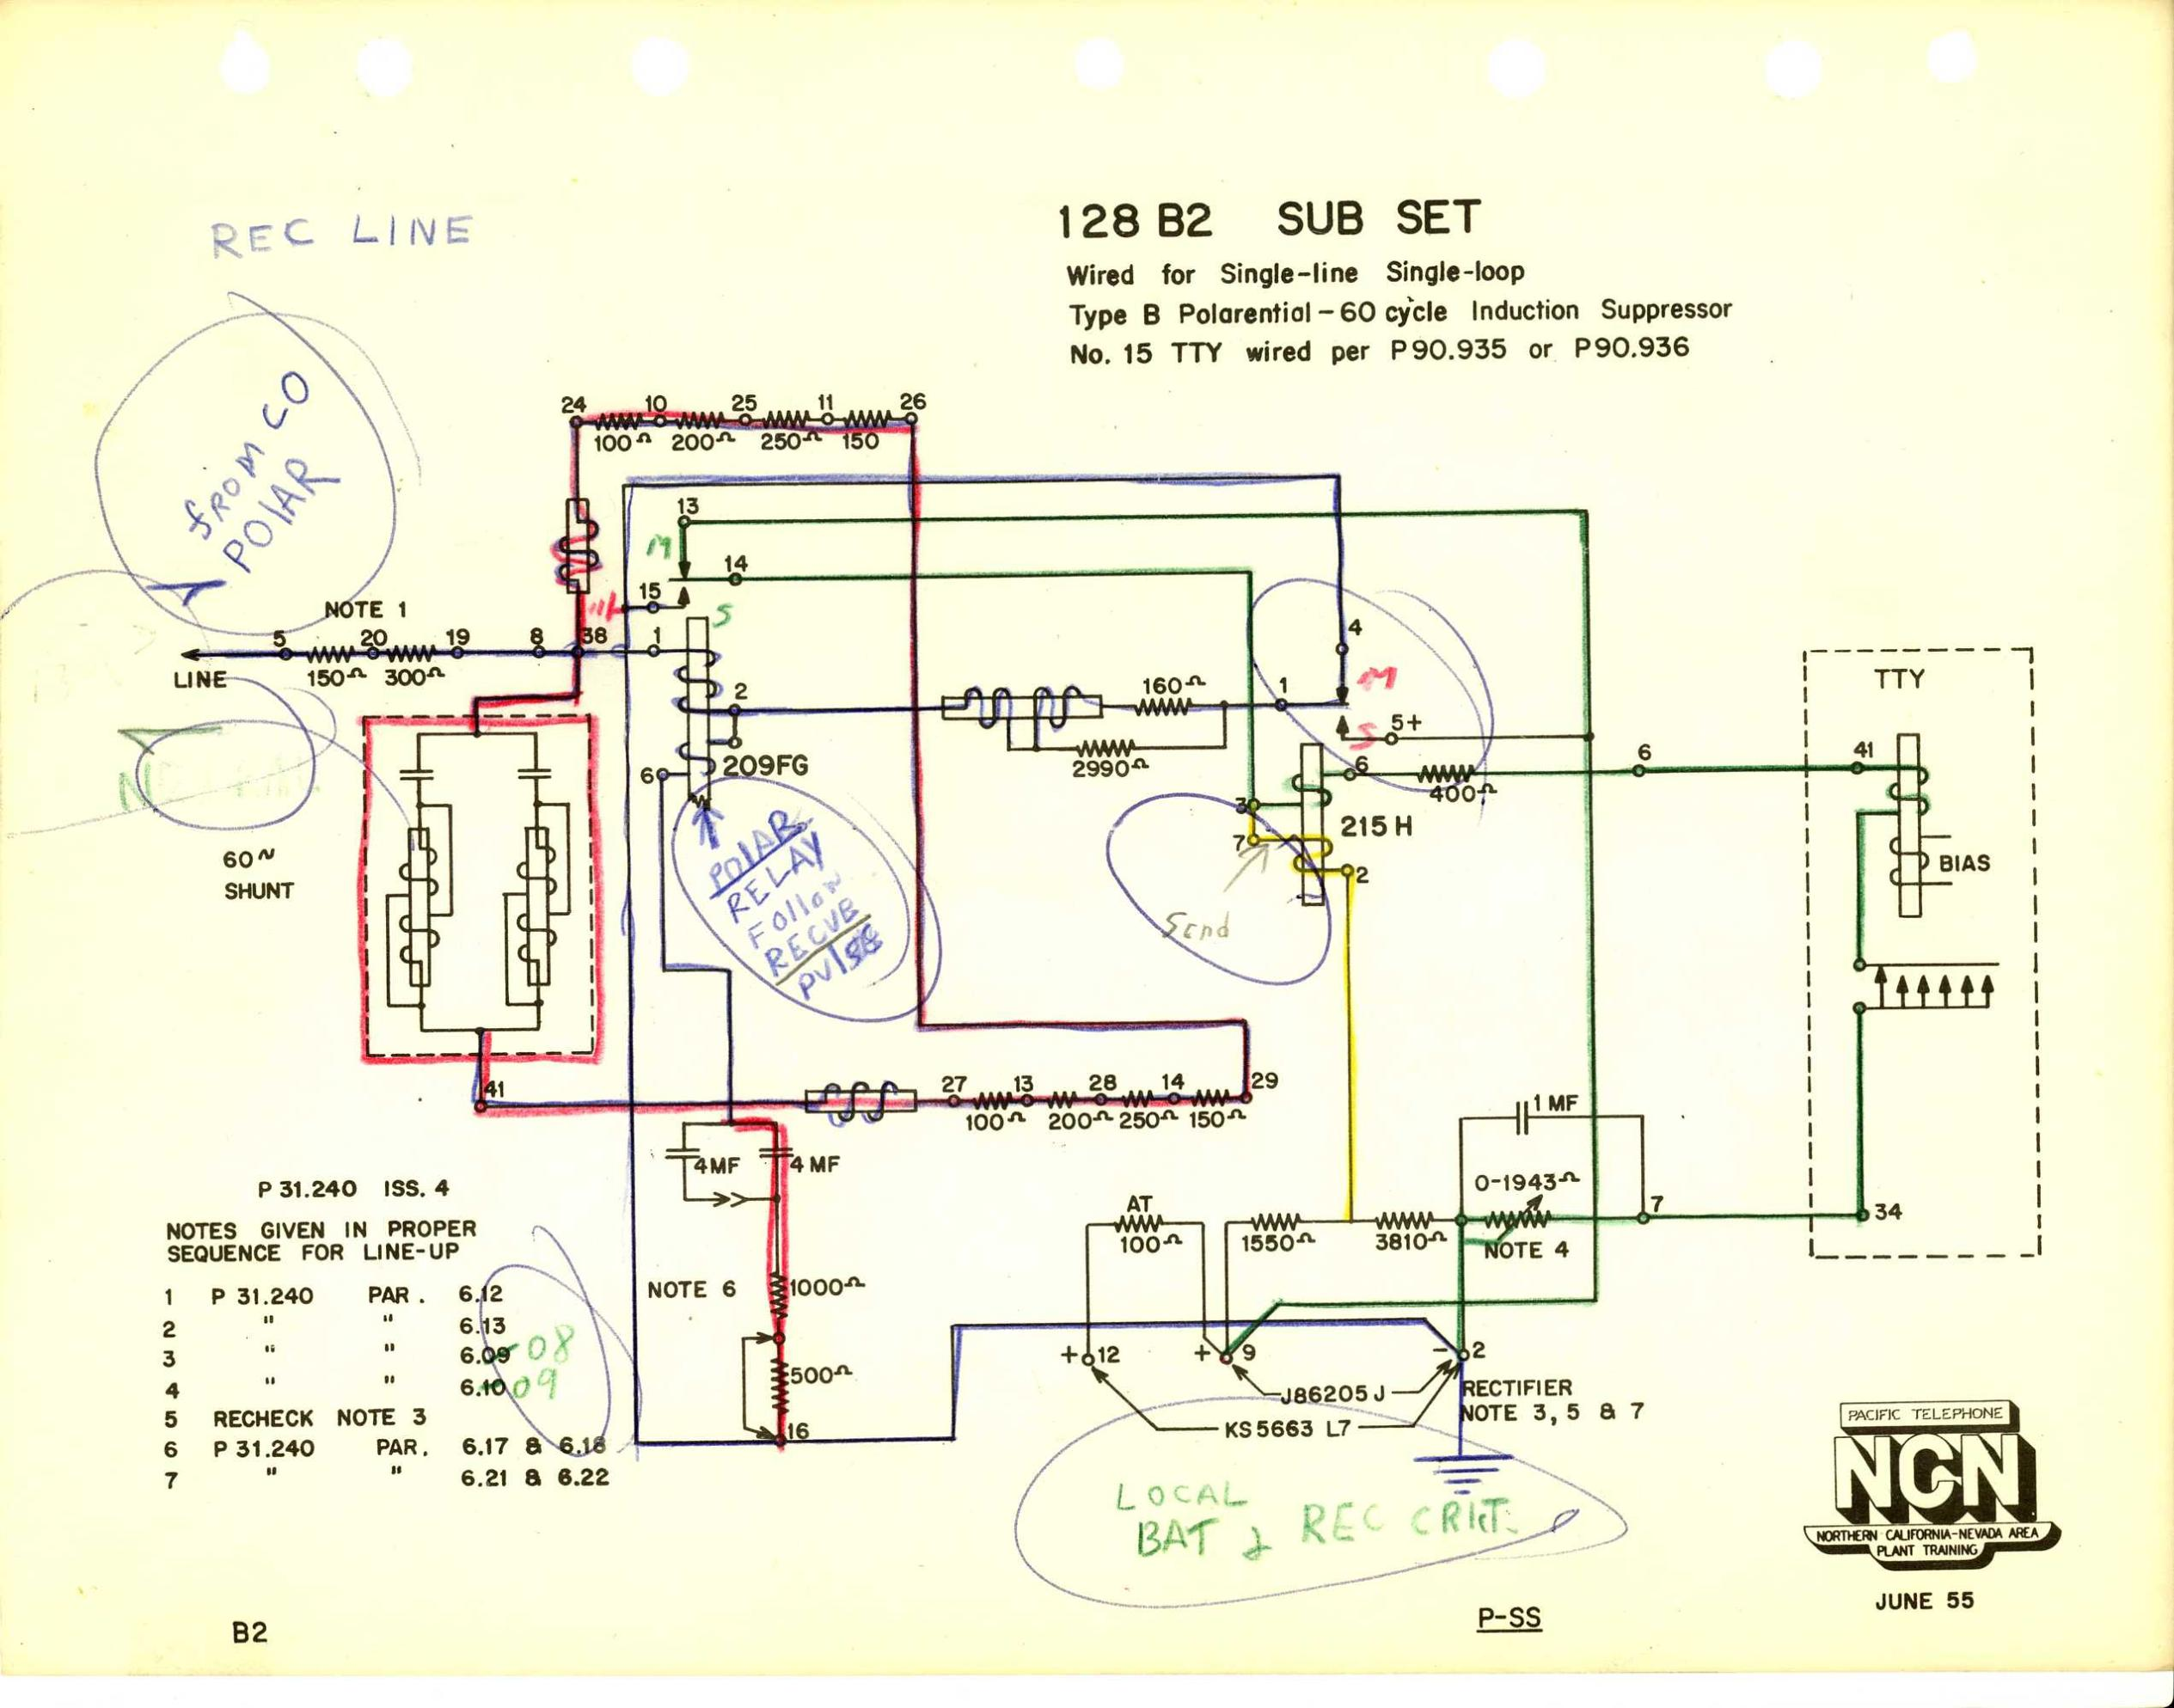 Teletype Wiring Diagrams And Schematics Current Loop Diagram 128b2 Link Sub Set Type B Polarential Single Line